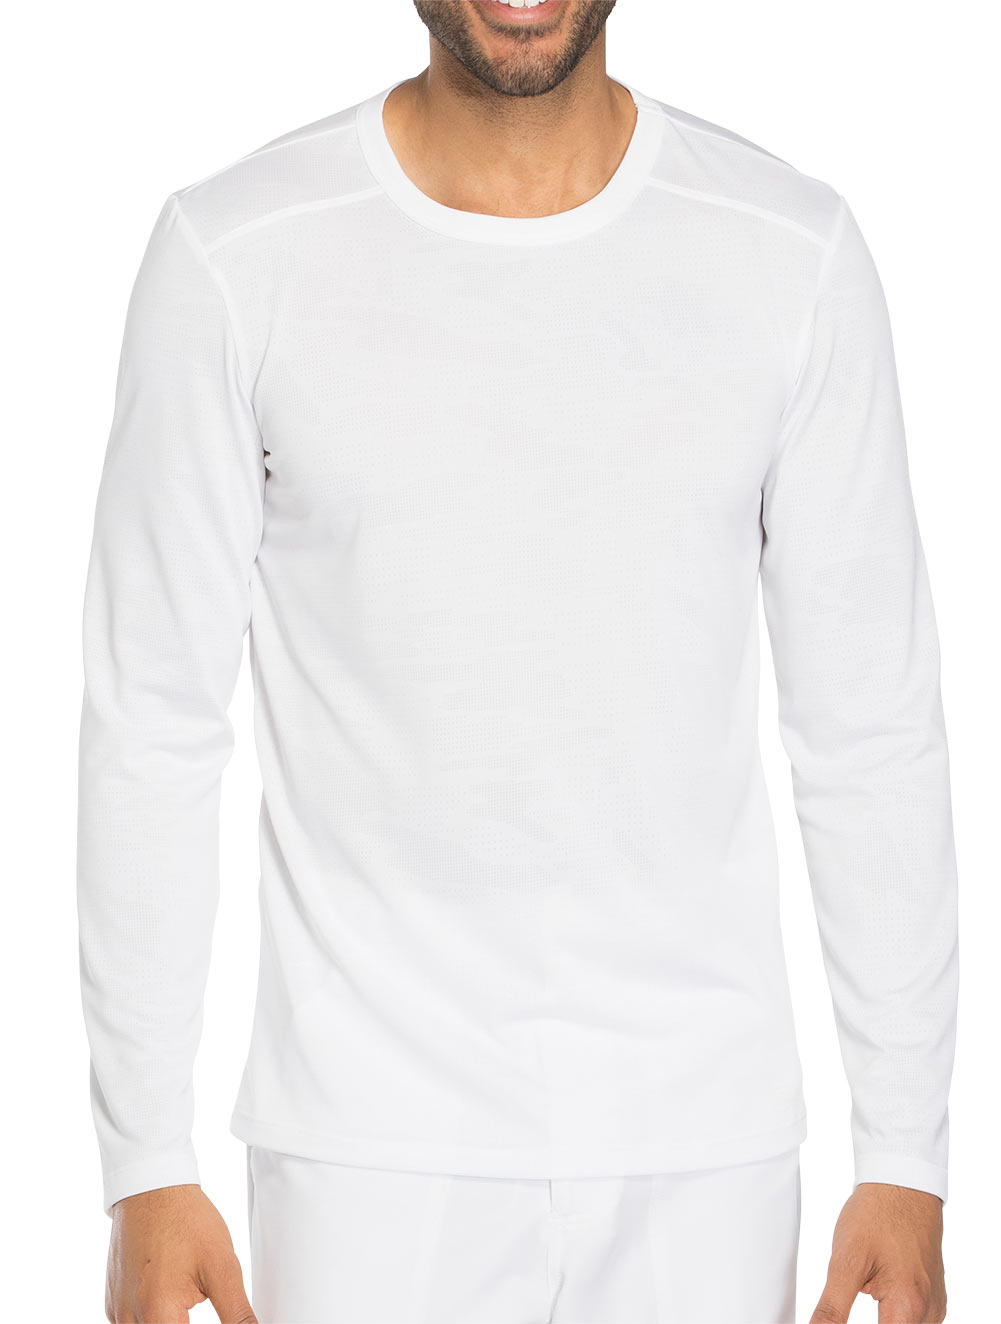 'Dynamix' Men's Long Sleeve Knit Underscrub